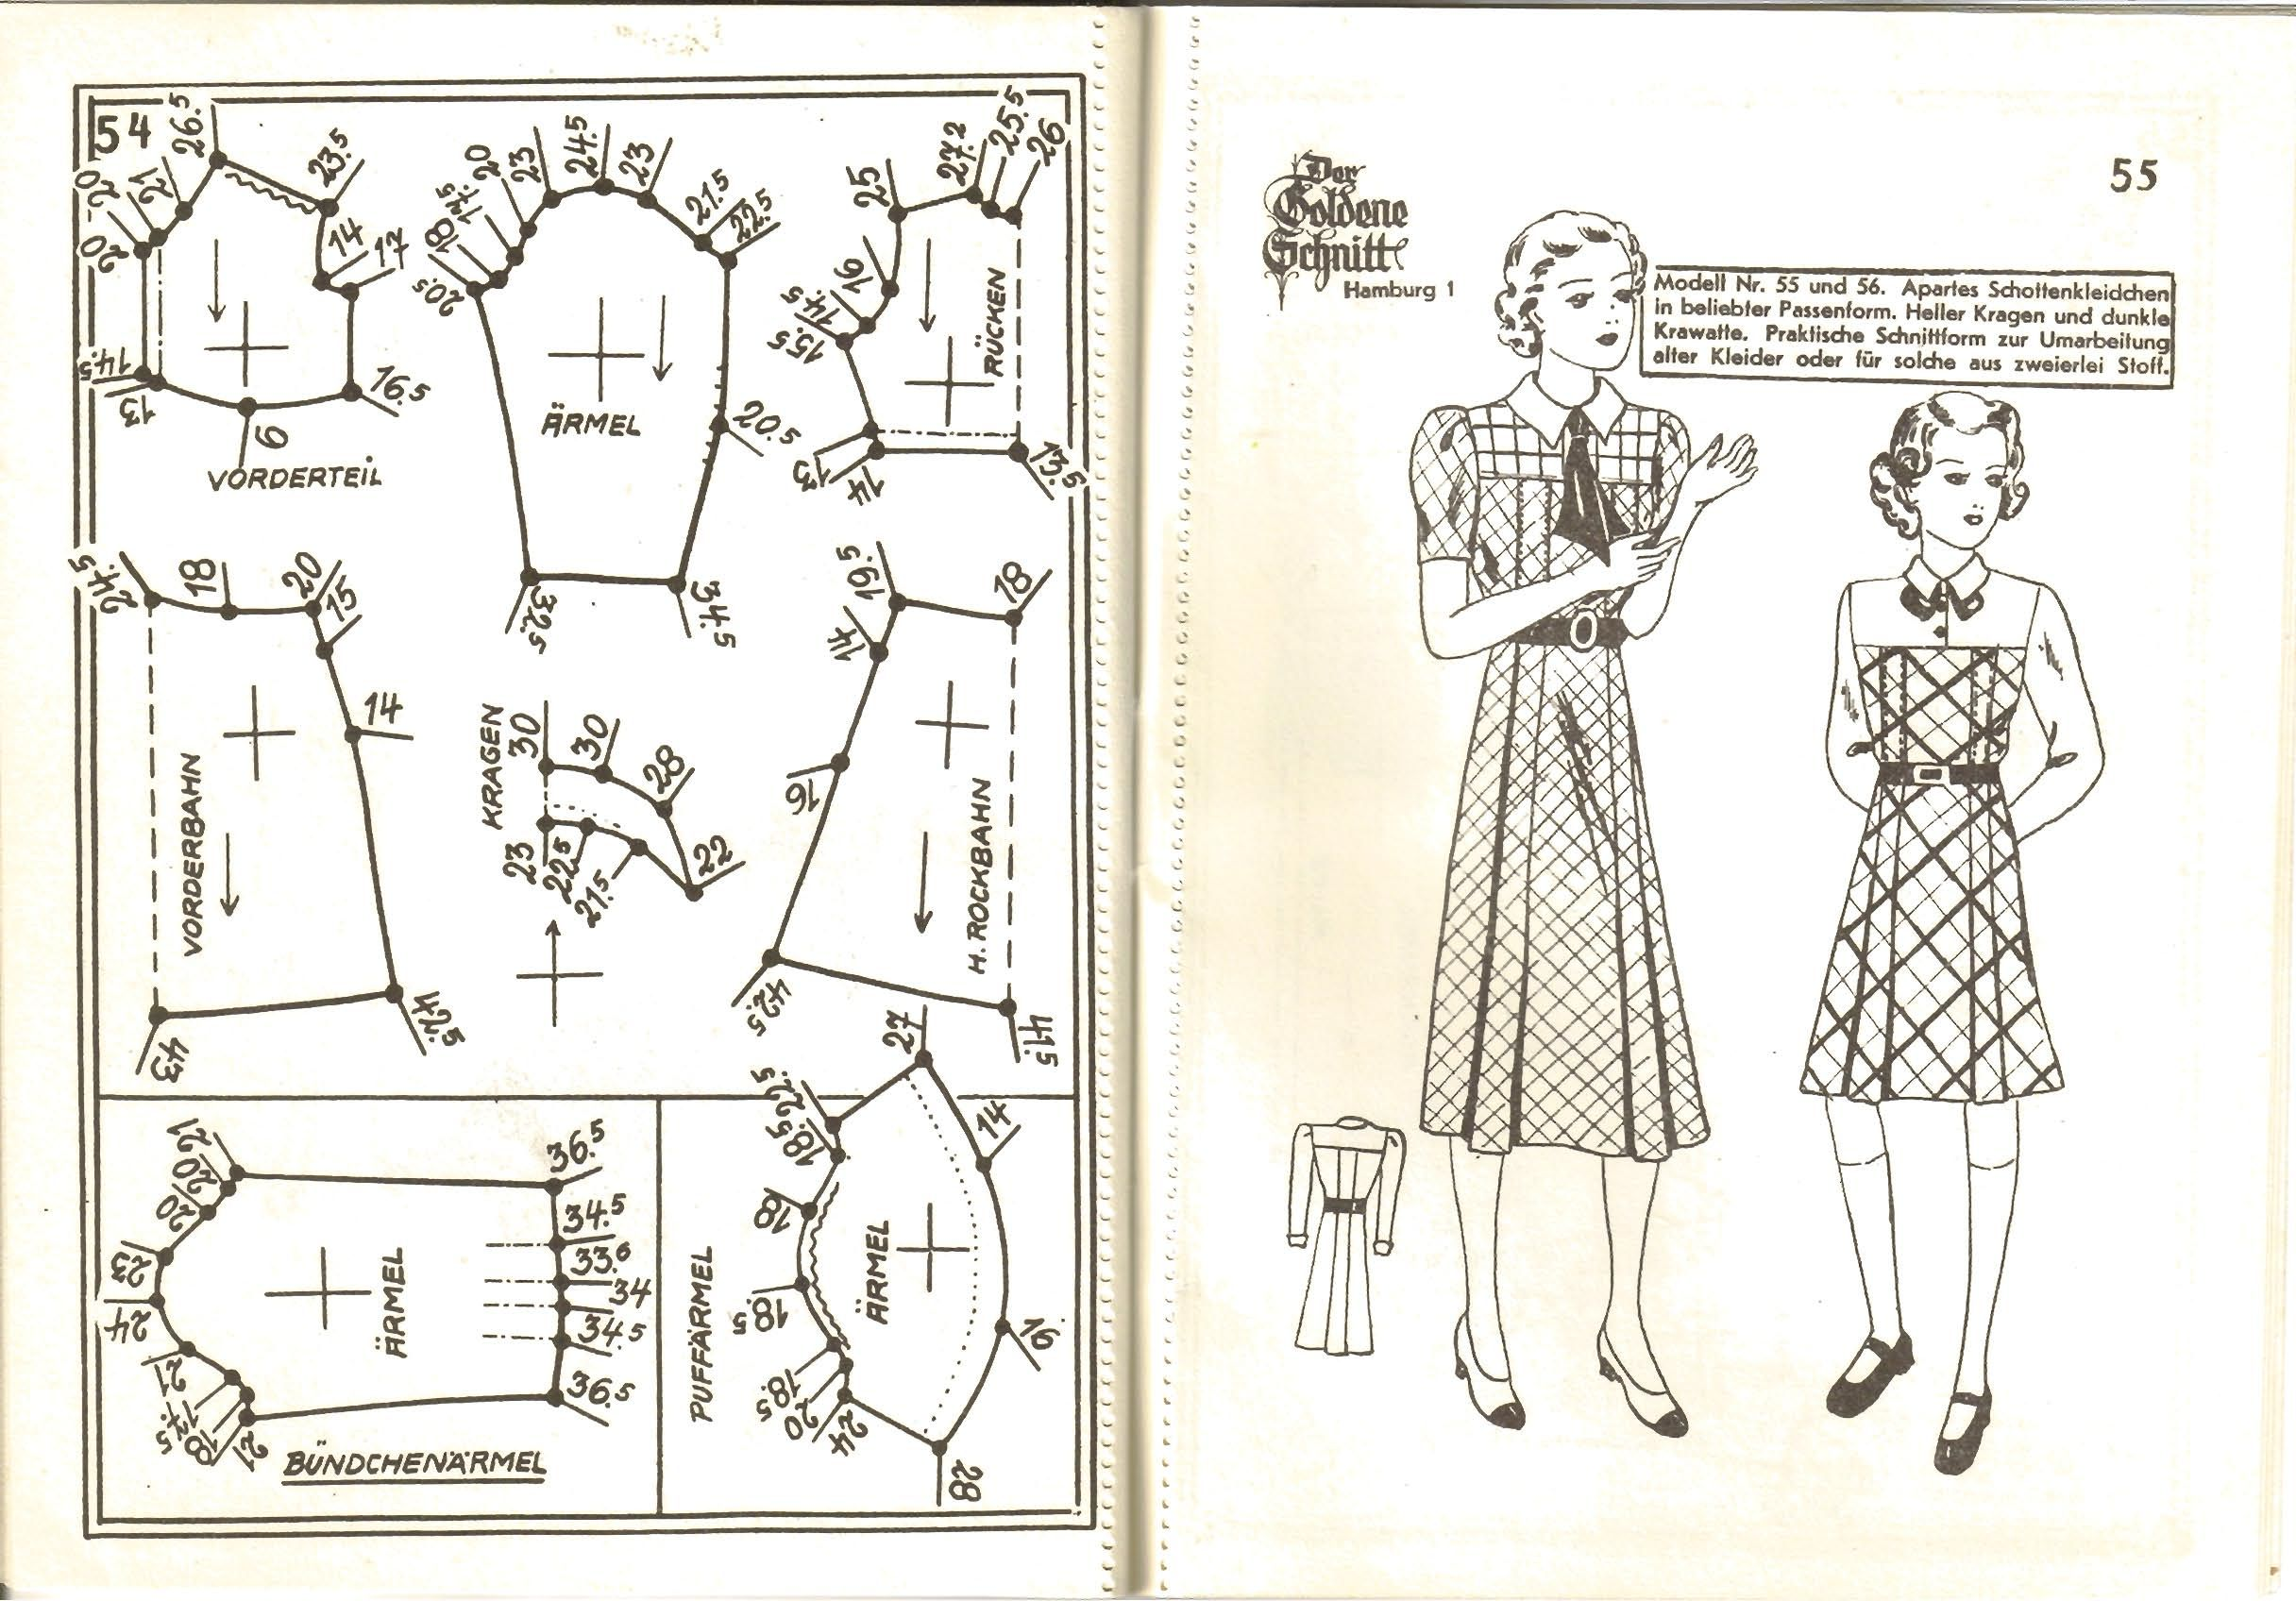 Lutterloh 1939 Book Of Cards - Models Diagram Card Page 54 & 55 ...